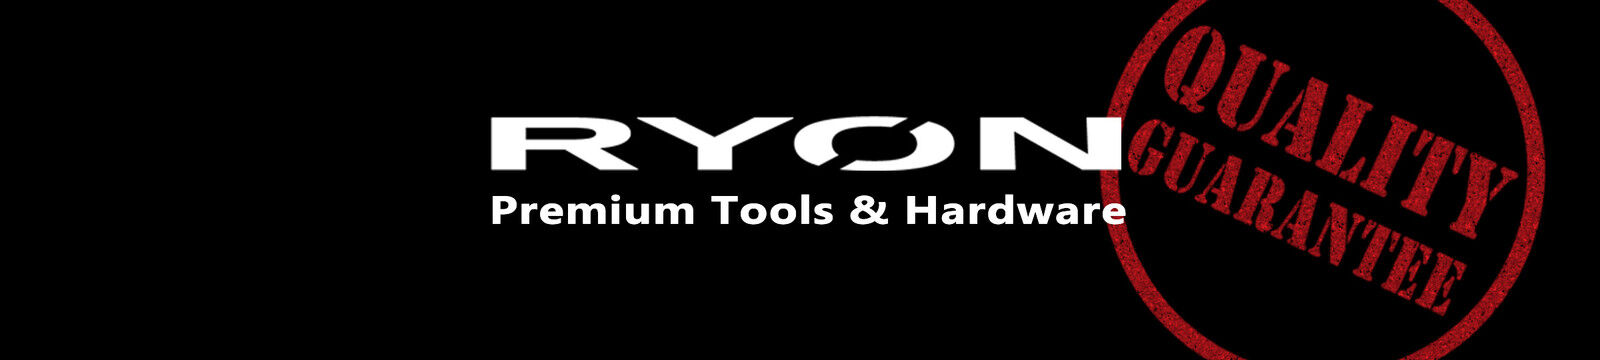 Ryon Premium Tools and Hardware